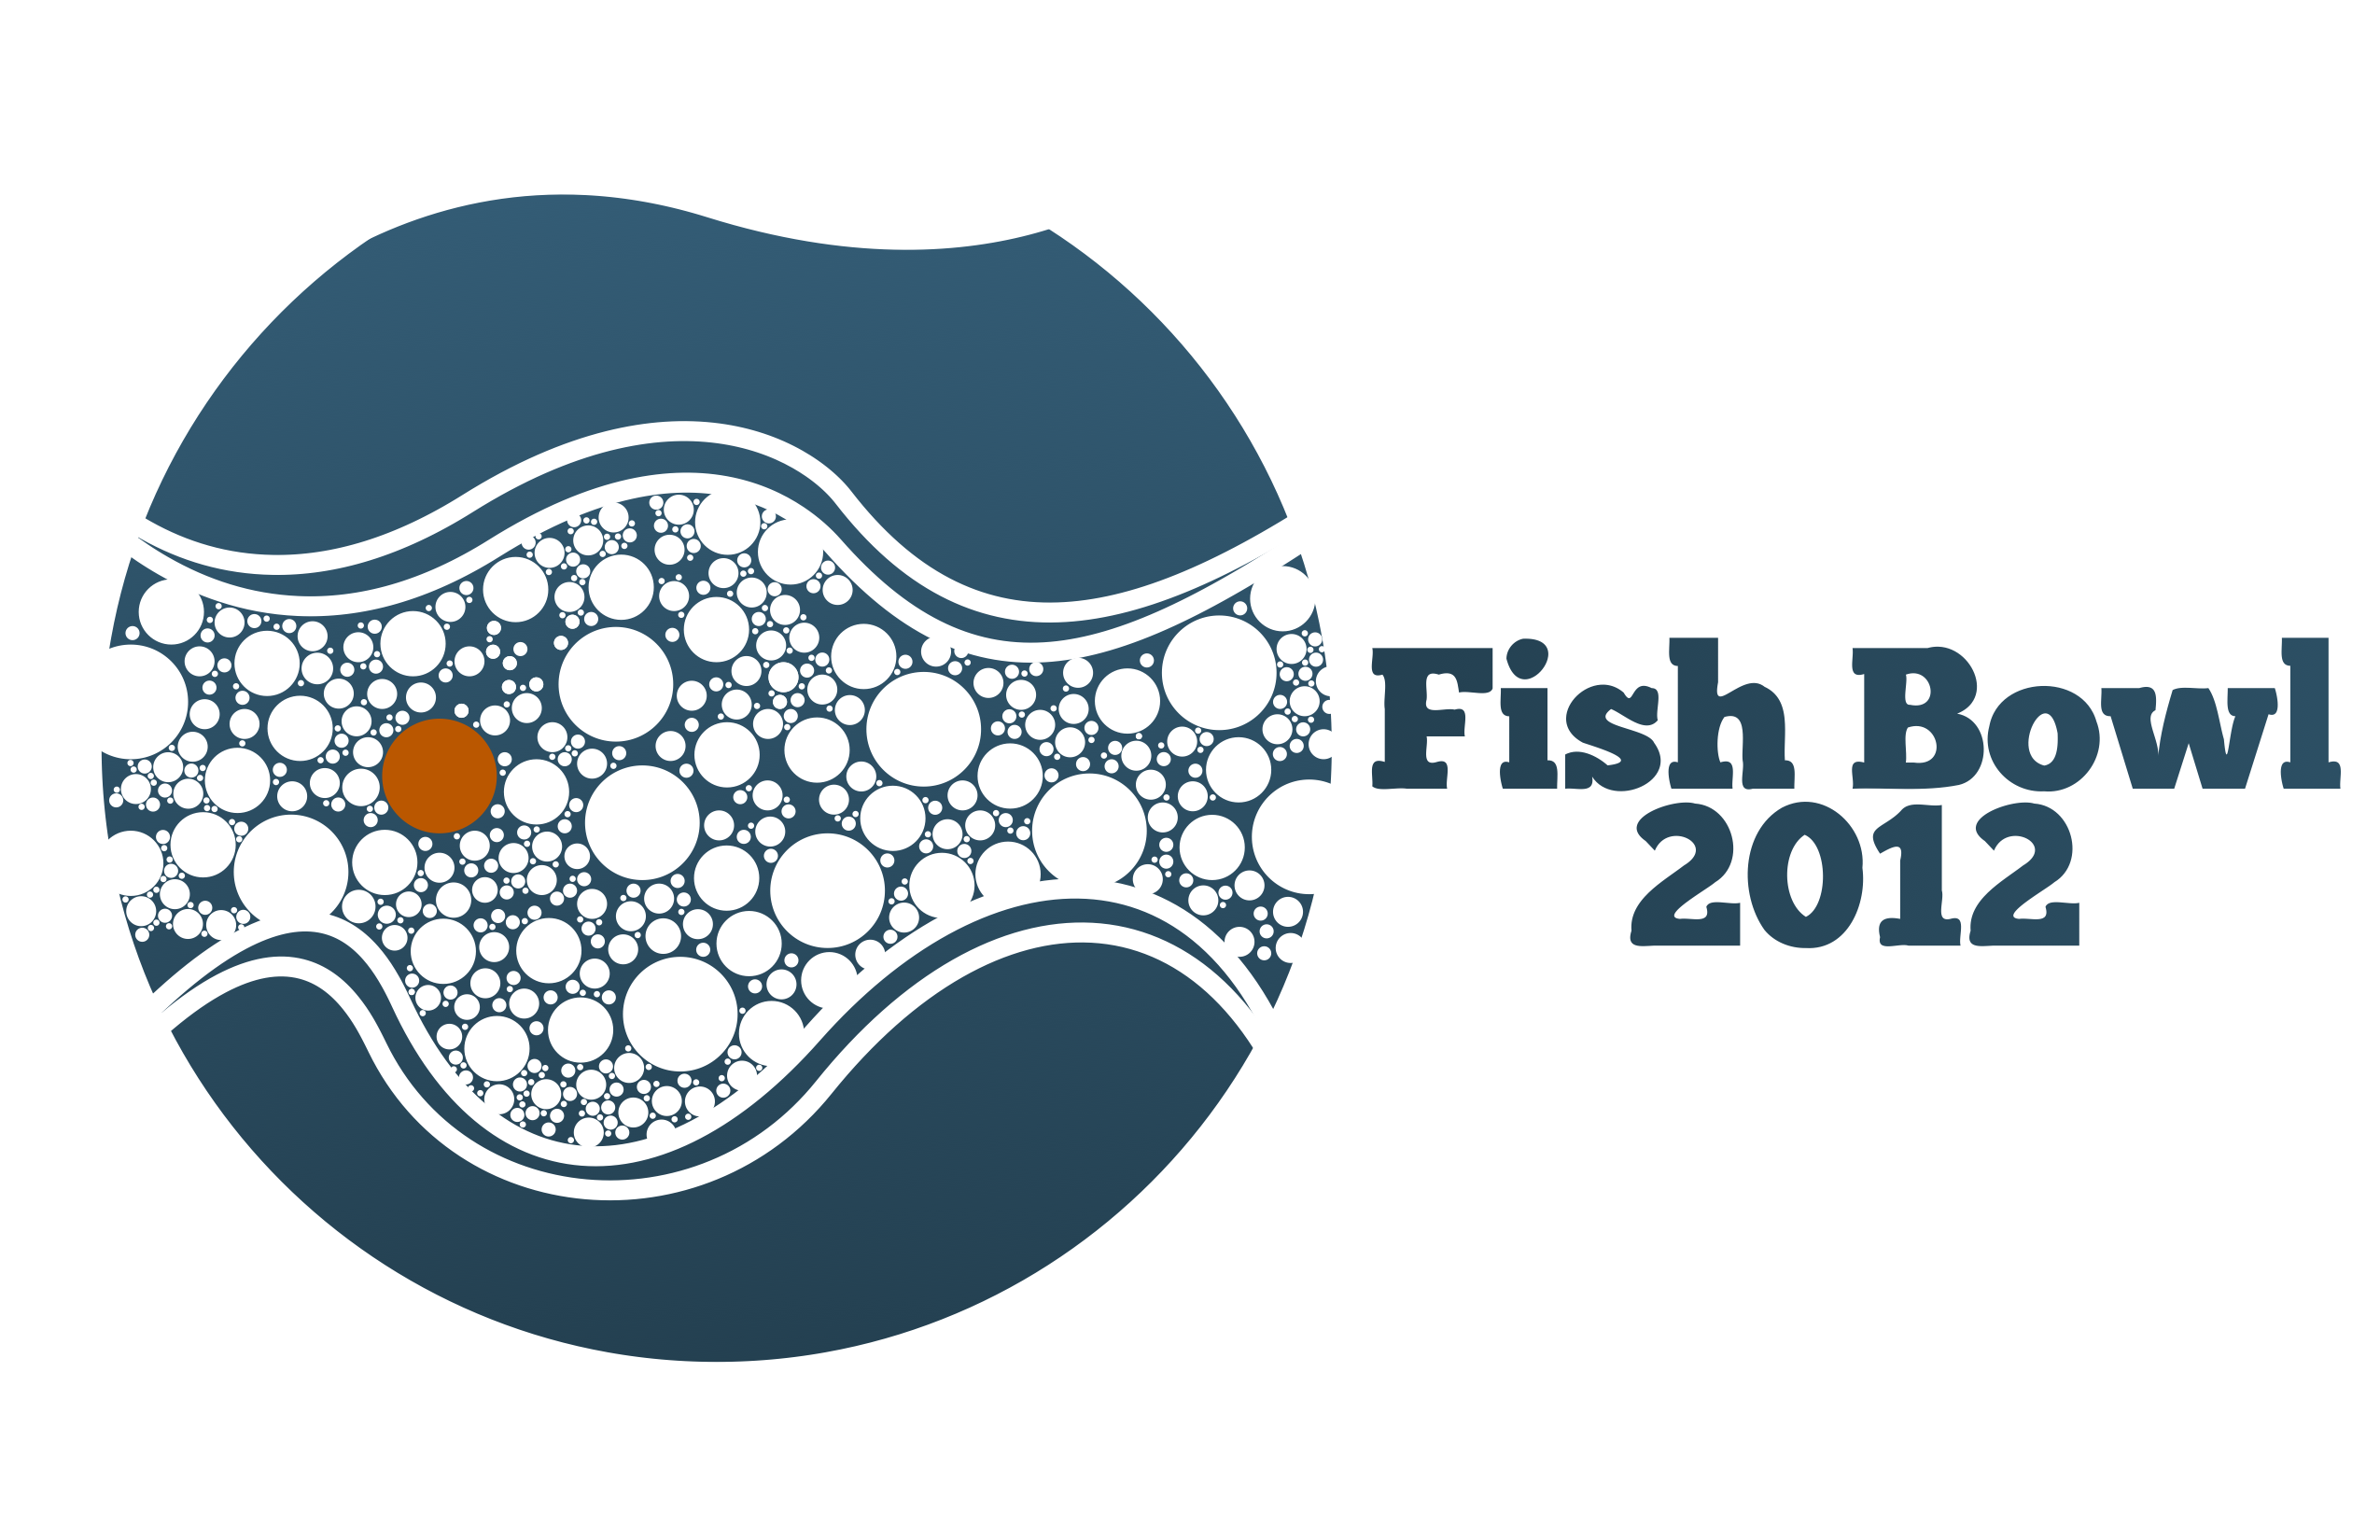 Fish Bowl 2012 Logo